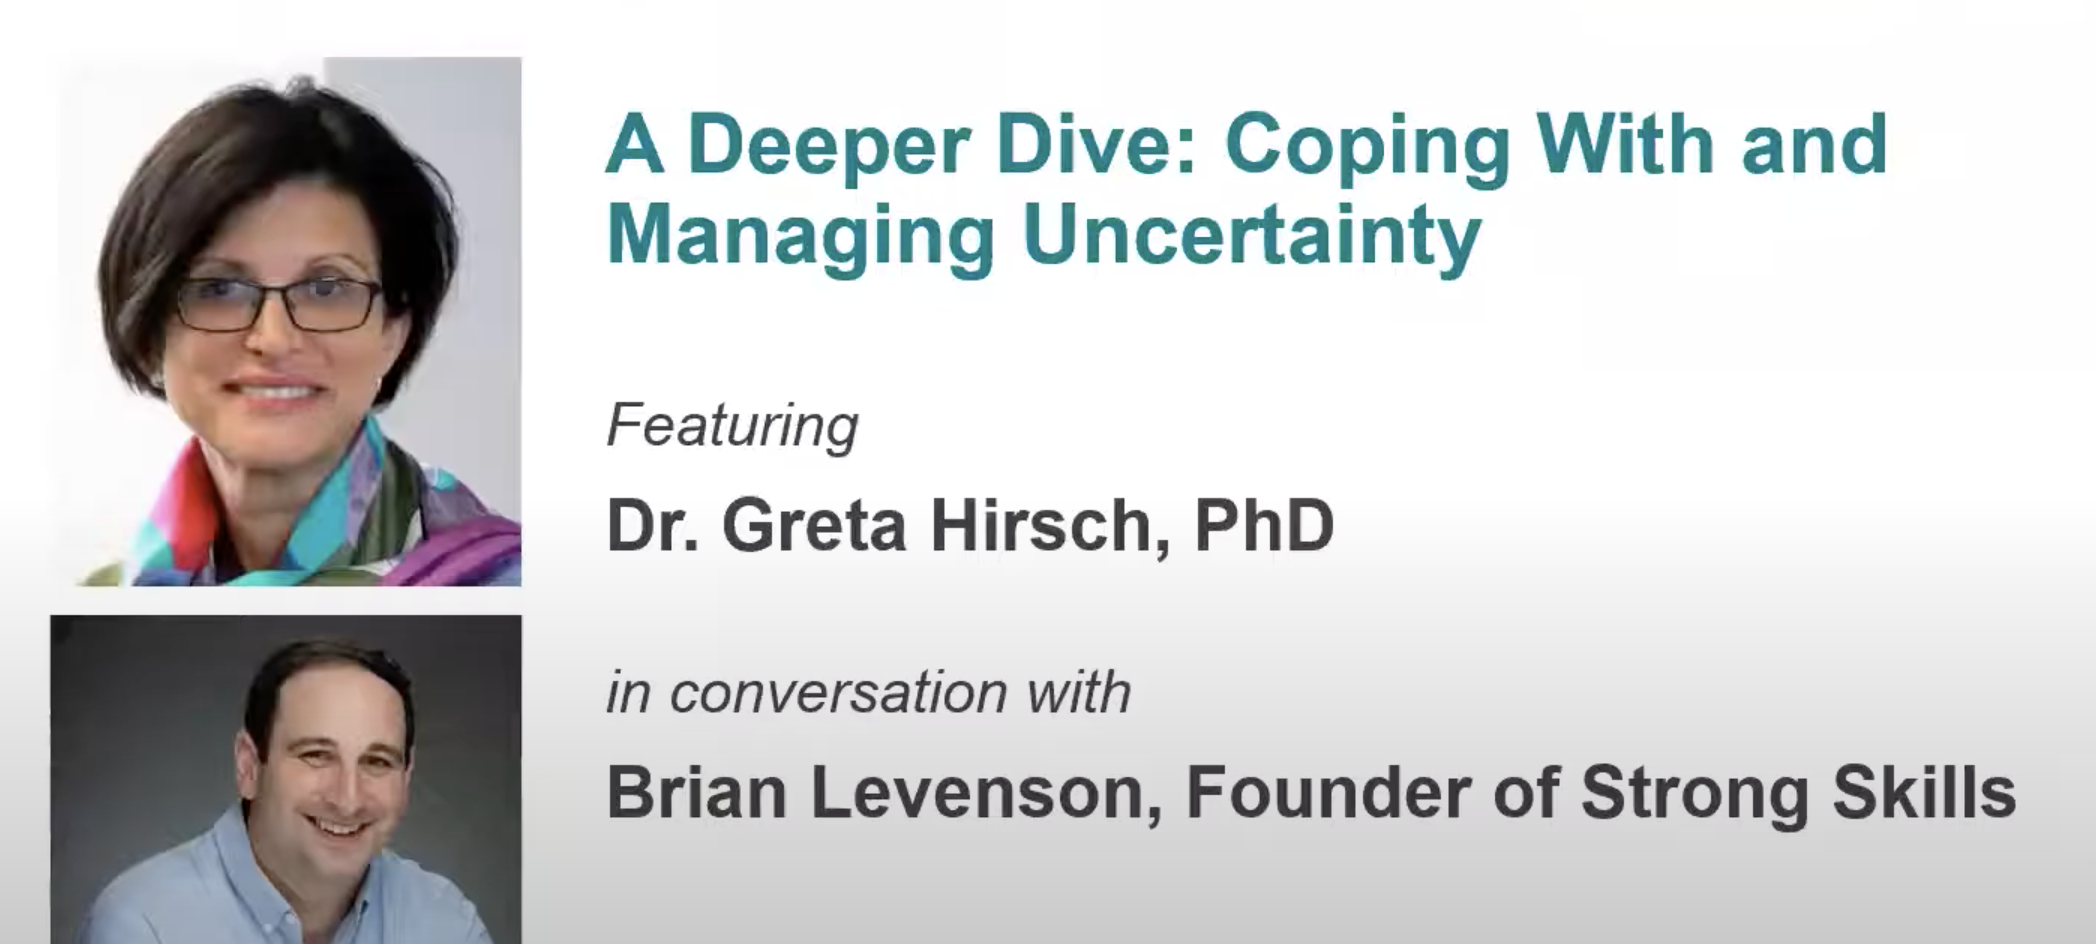 Dr. Greta Hirsch & Brian Levinson Photos for A Deeper Dive: Coping With and Managing Uncertainty